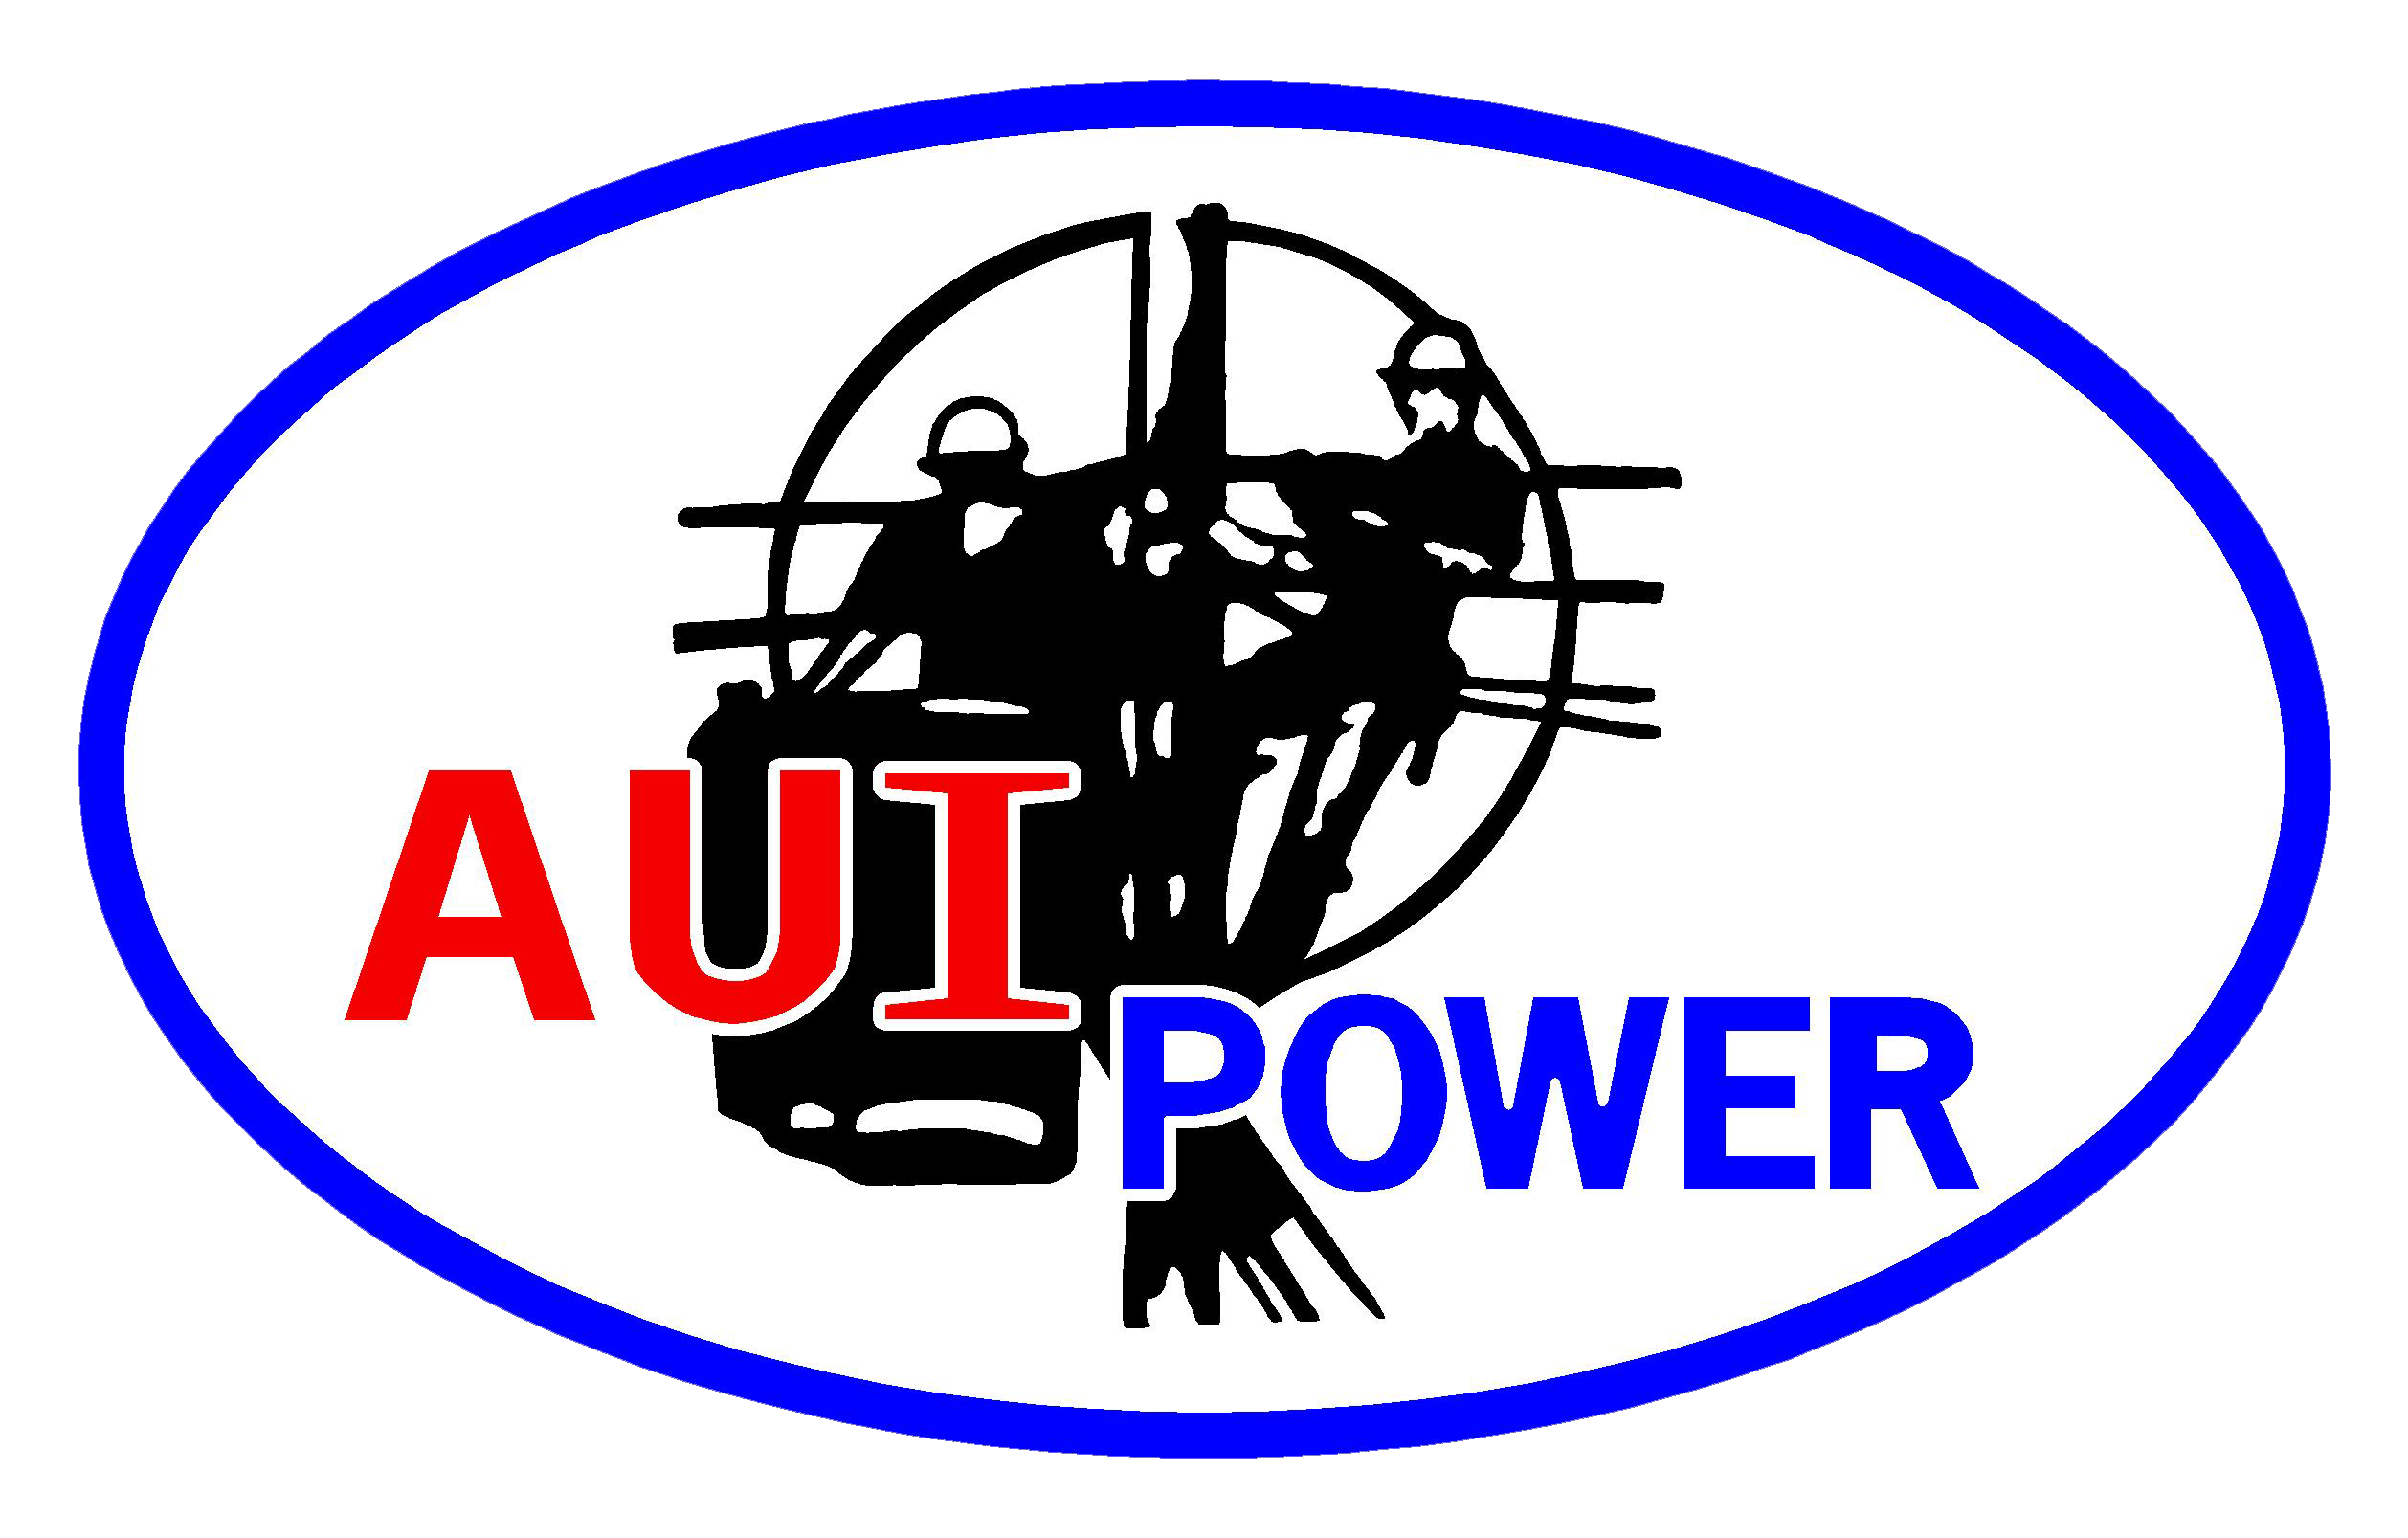 AUI Power